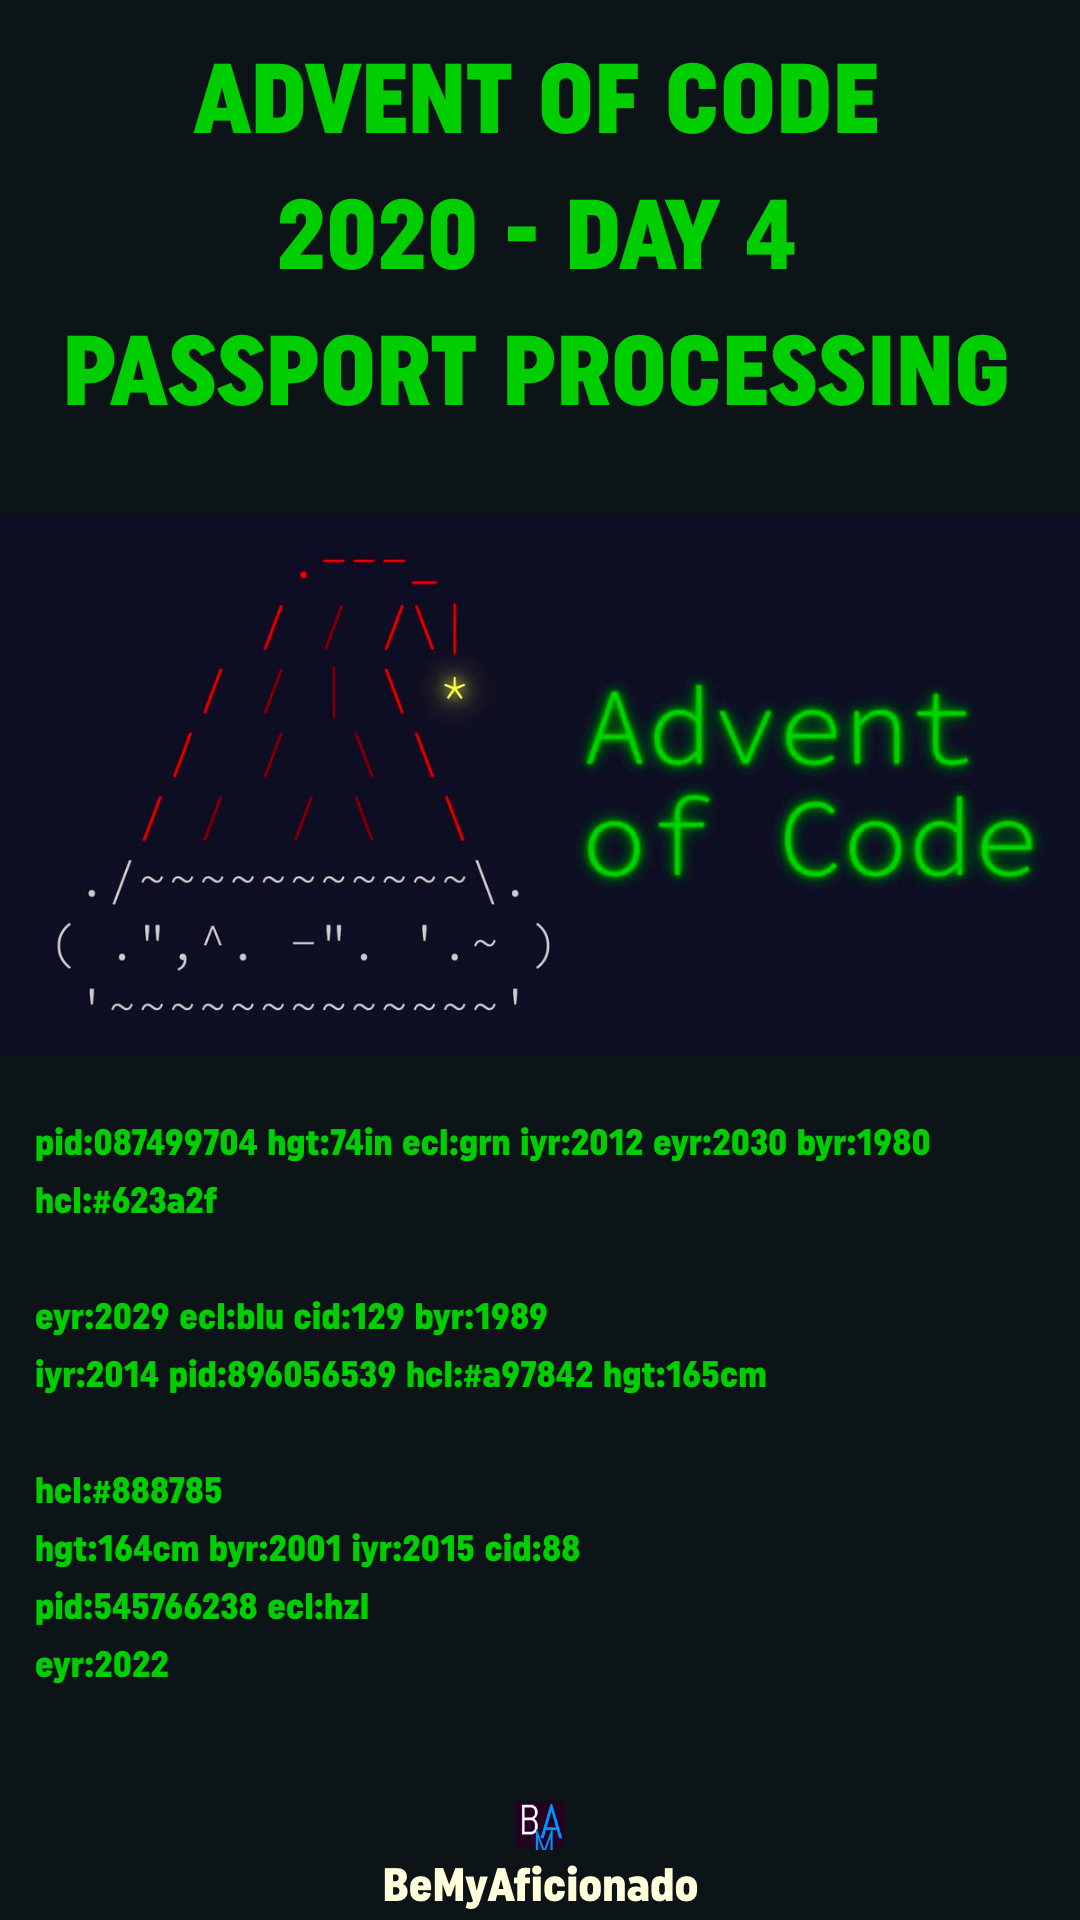 Advent of Code 2020 - DAY 4 - Passport Processing